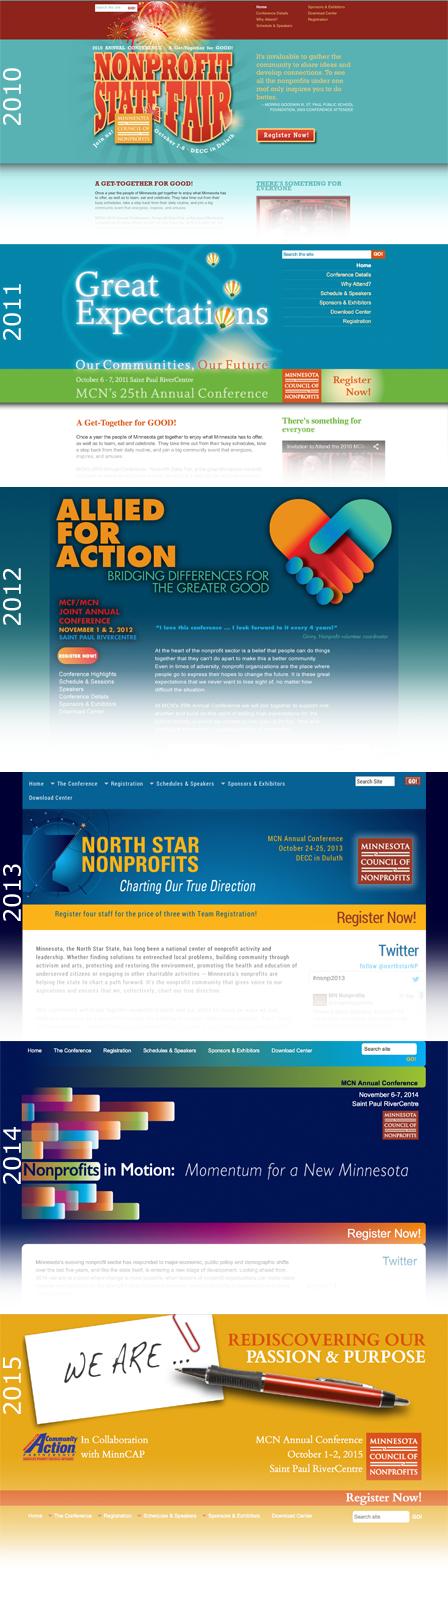 Case Study Image: Minnesota Council of Nonprofits (MCN) conference identities, 2010 to 2015